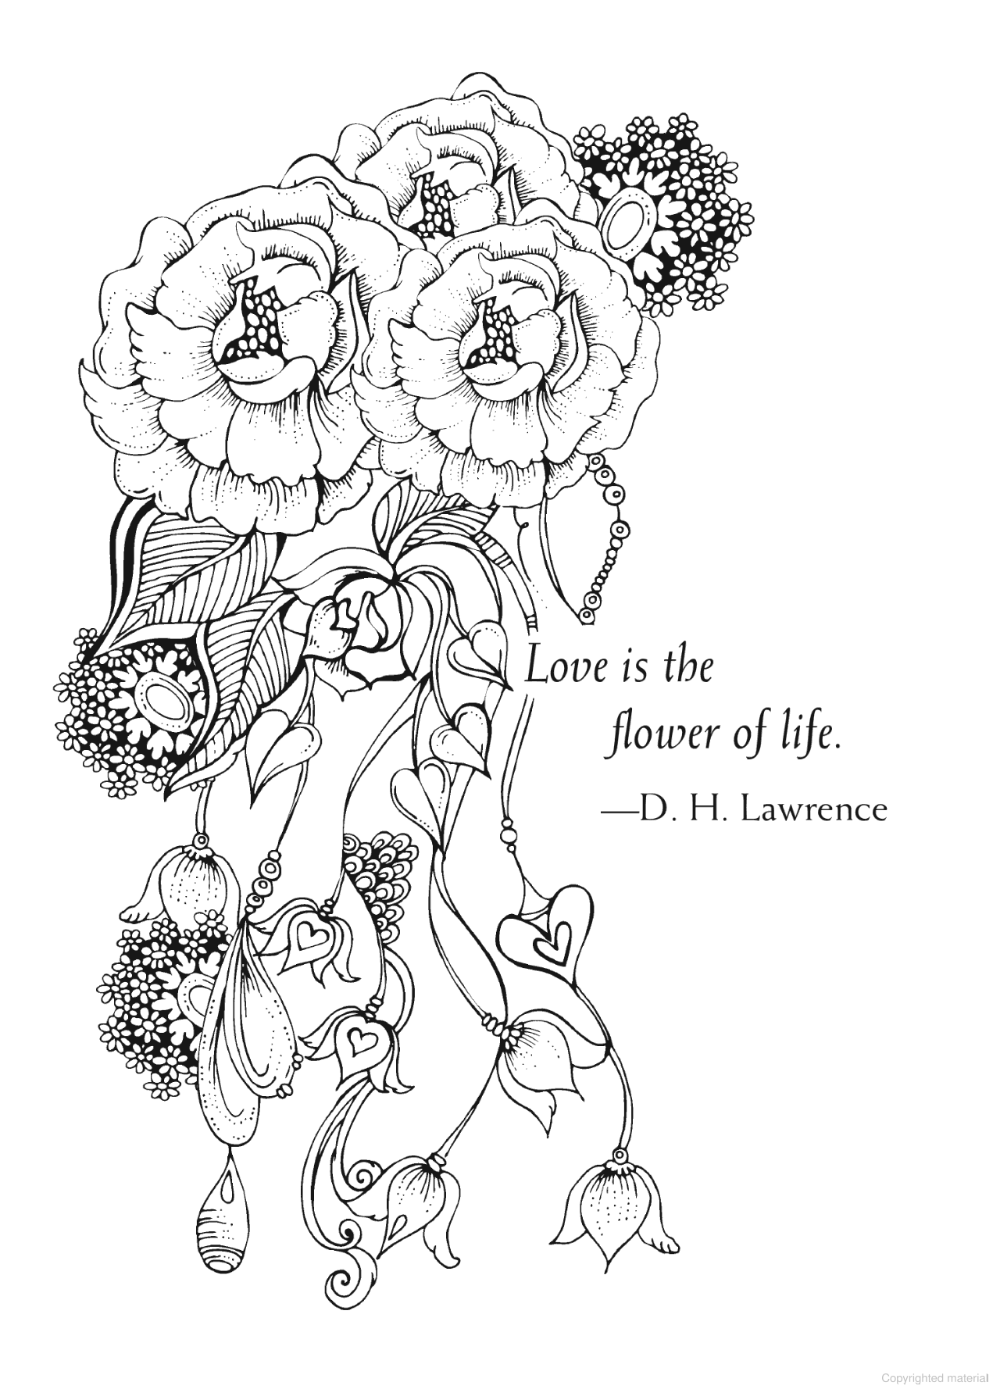 Bliss Love Coloring Book Your Passport To Calm Love Coloring Pages Coloring Pages Coloring Books